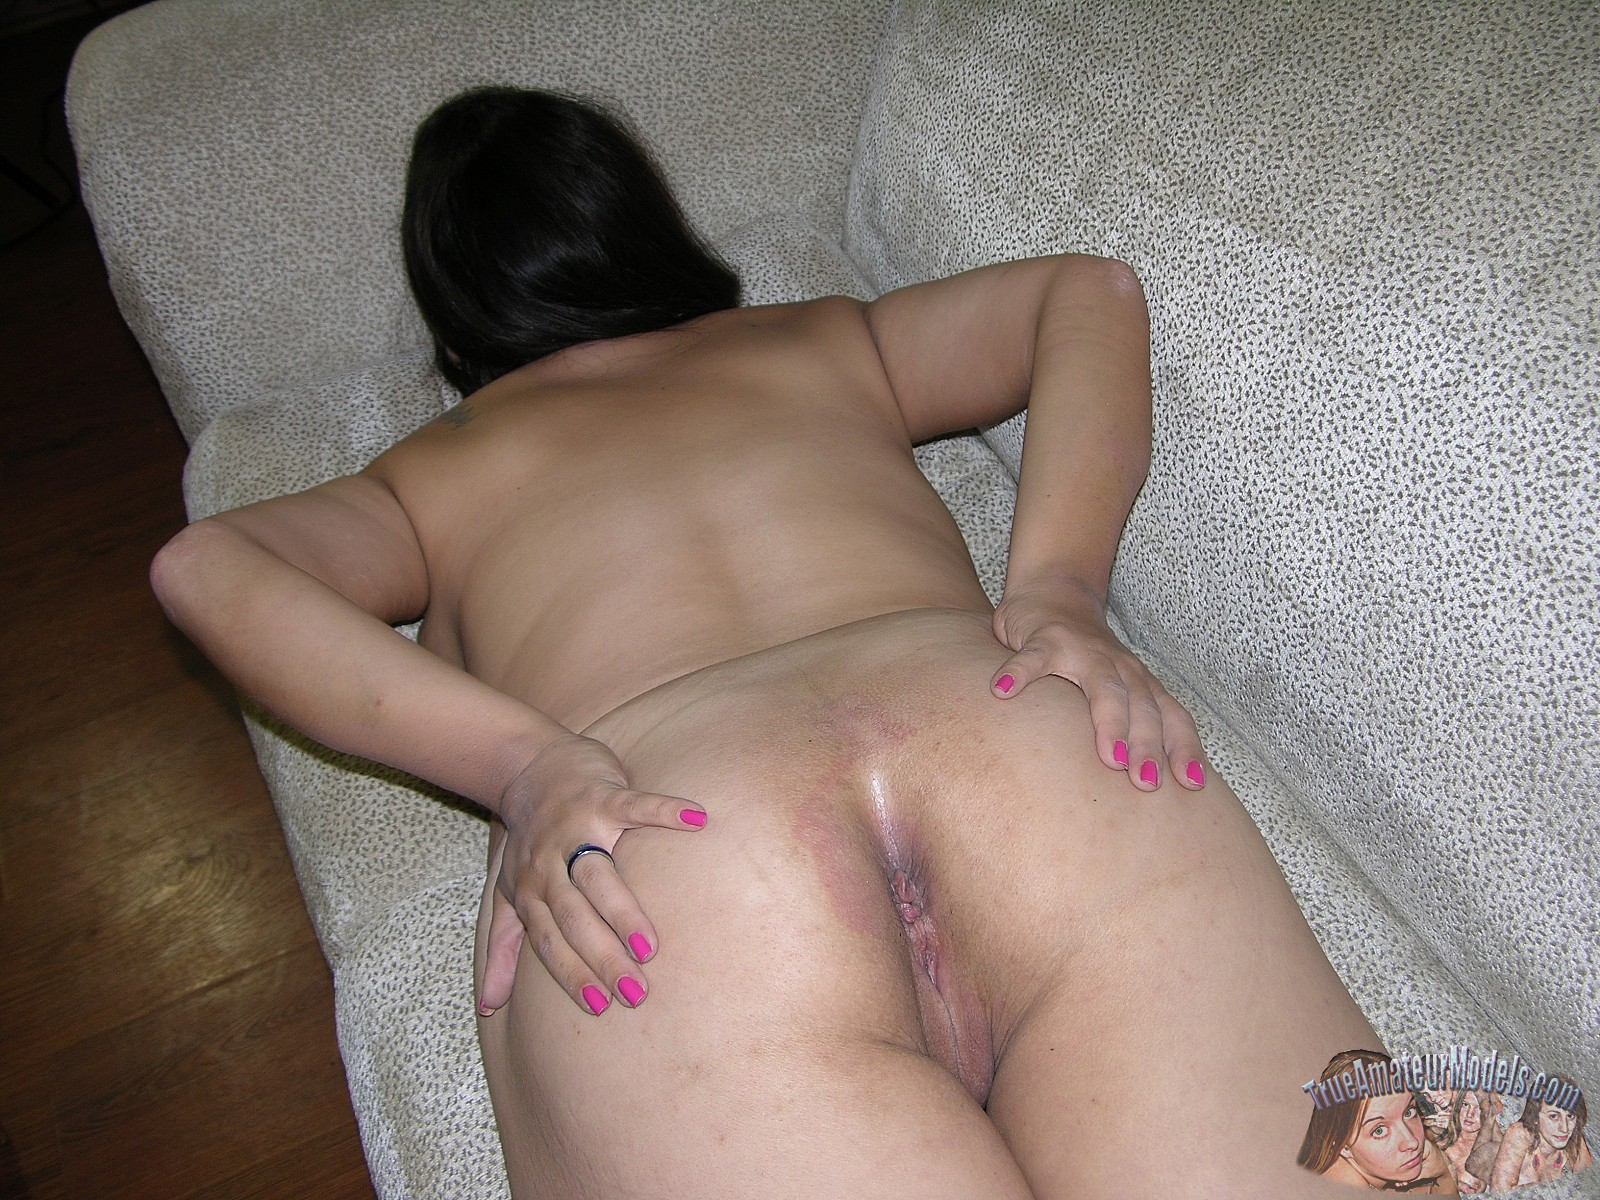 Speak Mexican girls ass spread